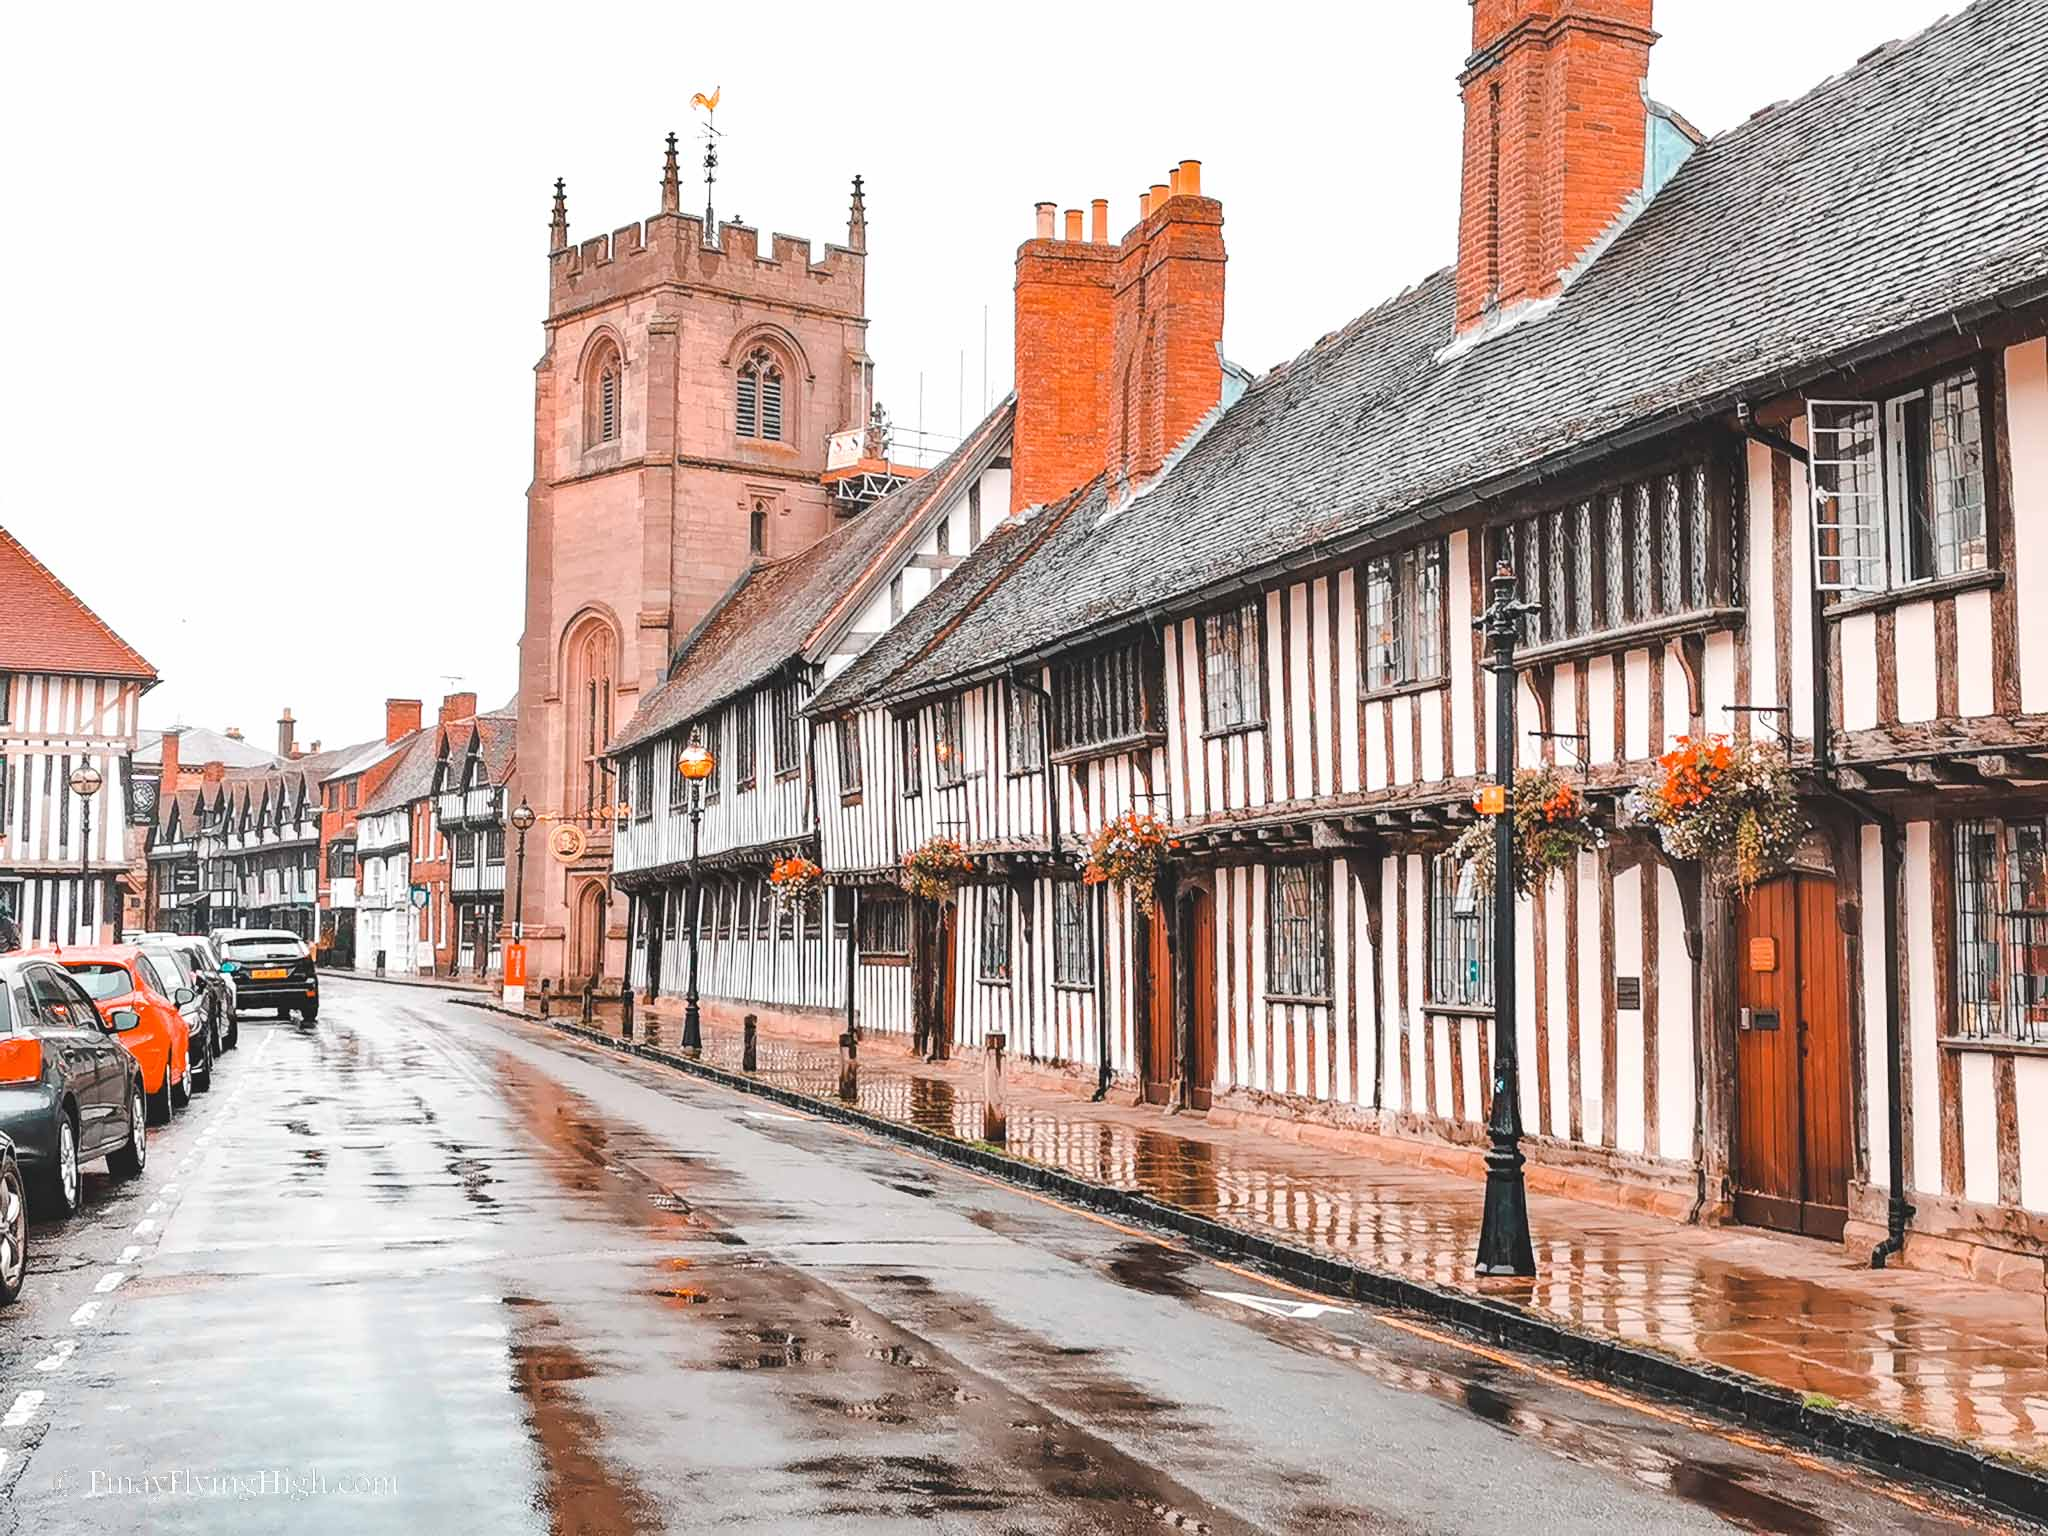 Shakespeare's Schoolroom and Guildhall, Stratford-Upon-Avon, Cotswold, England